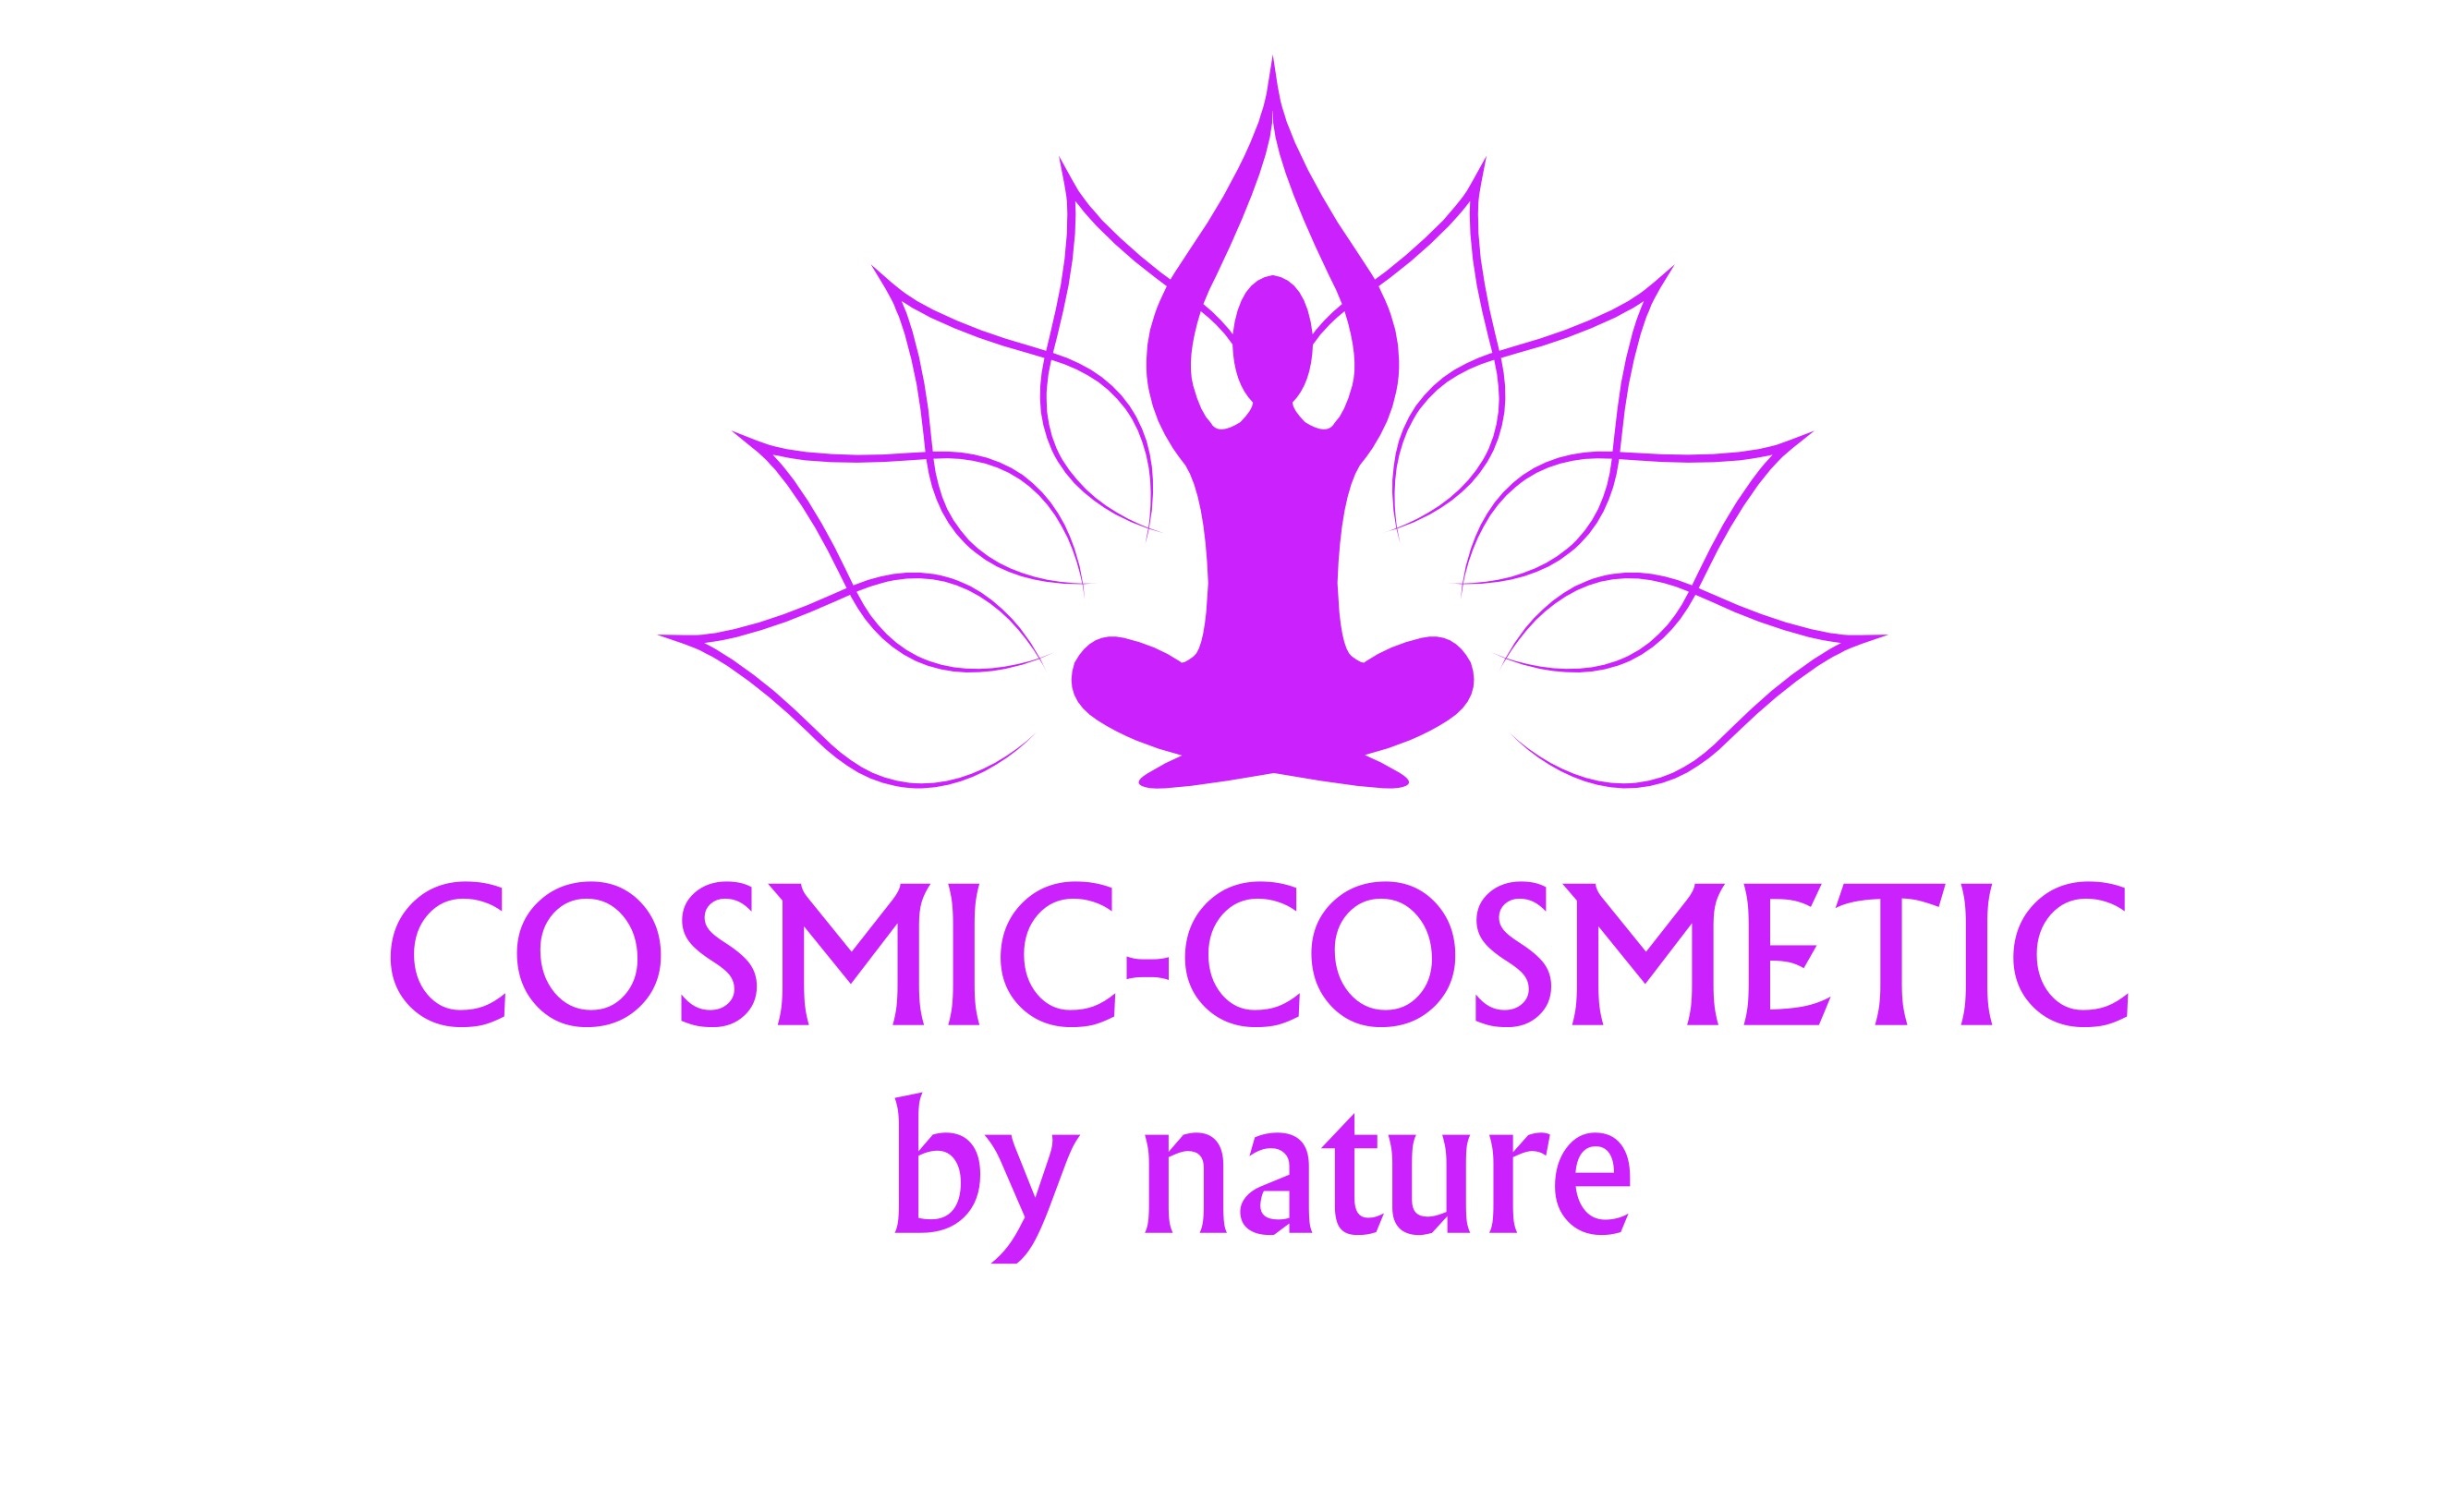 COSMIC-COSMETIC by nature